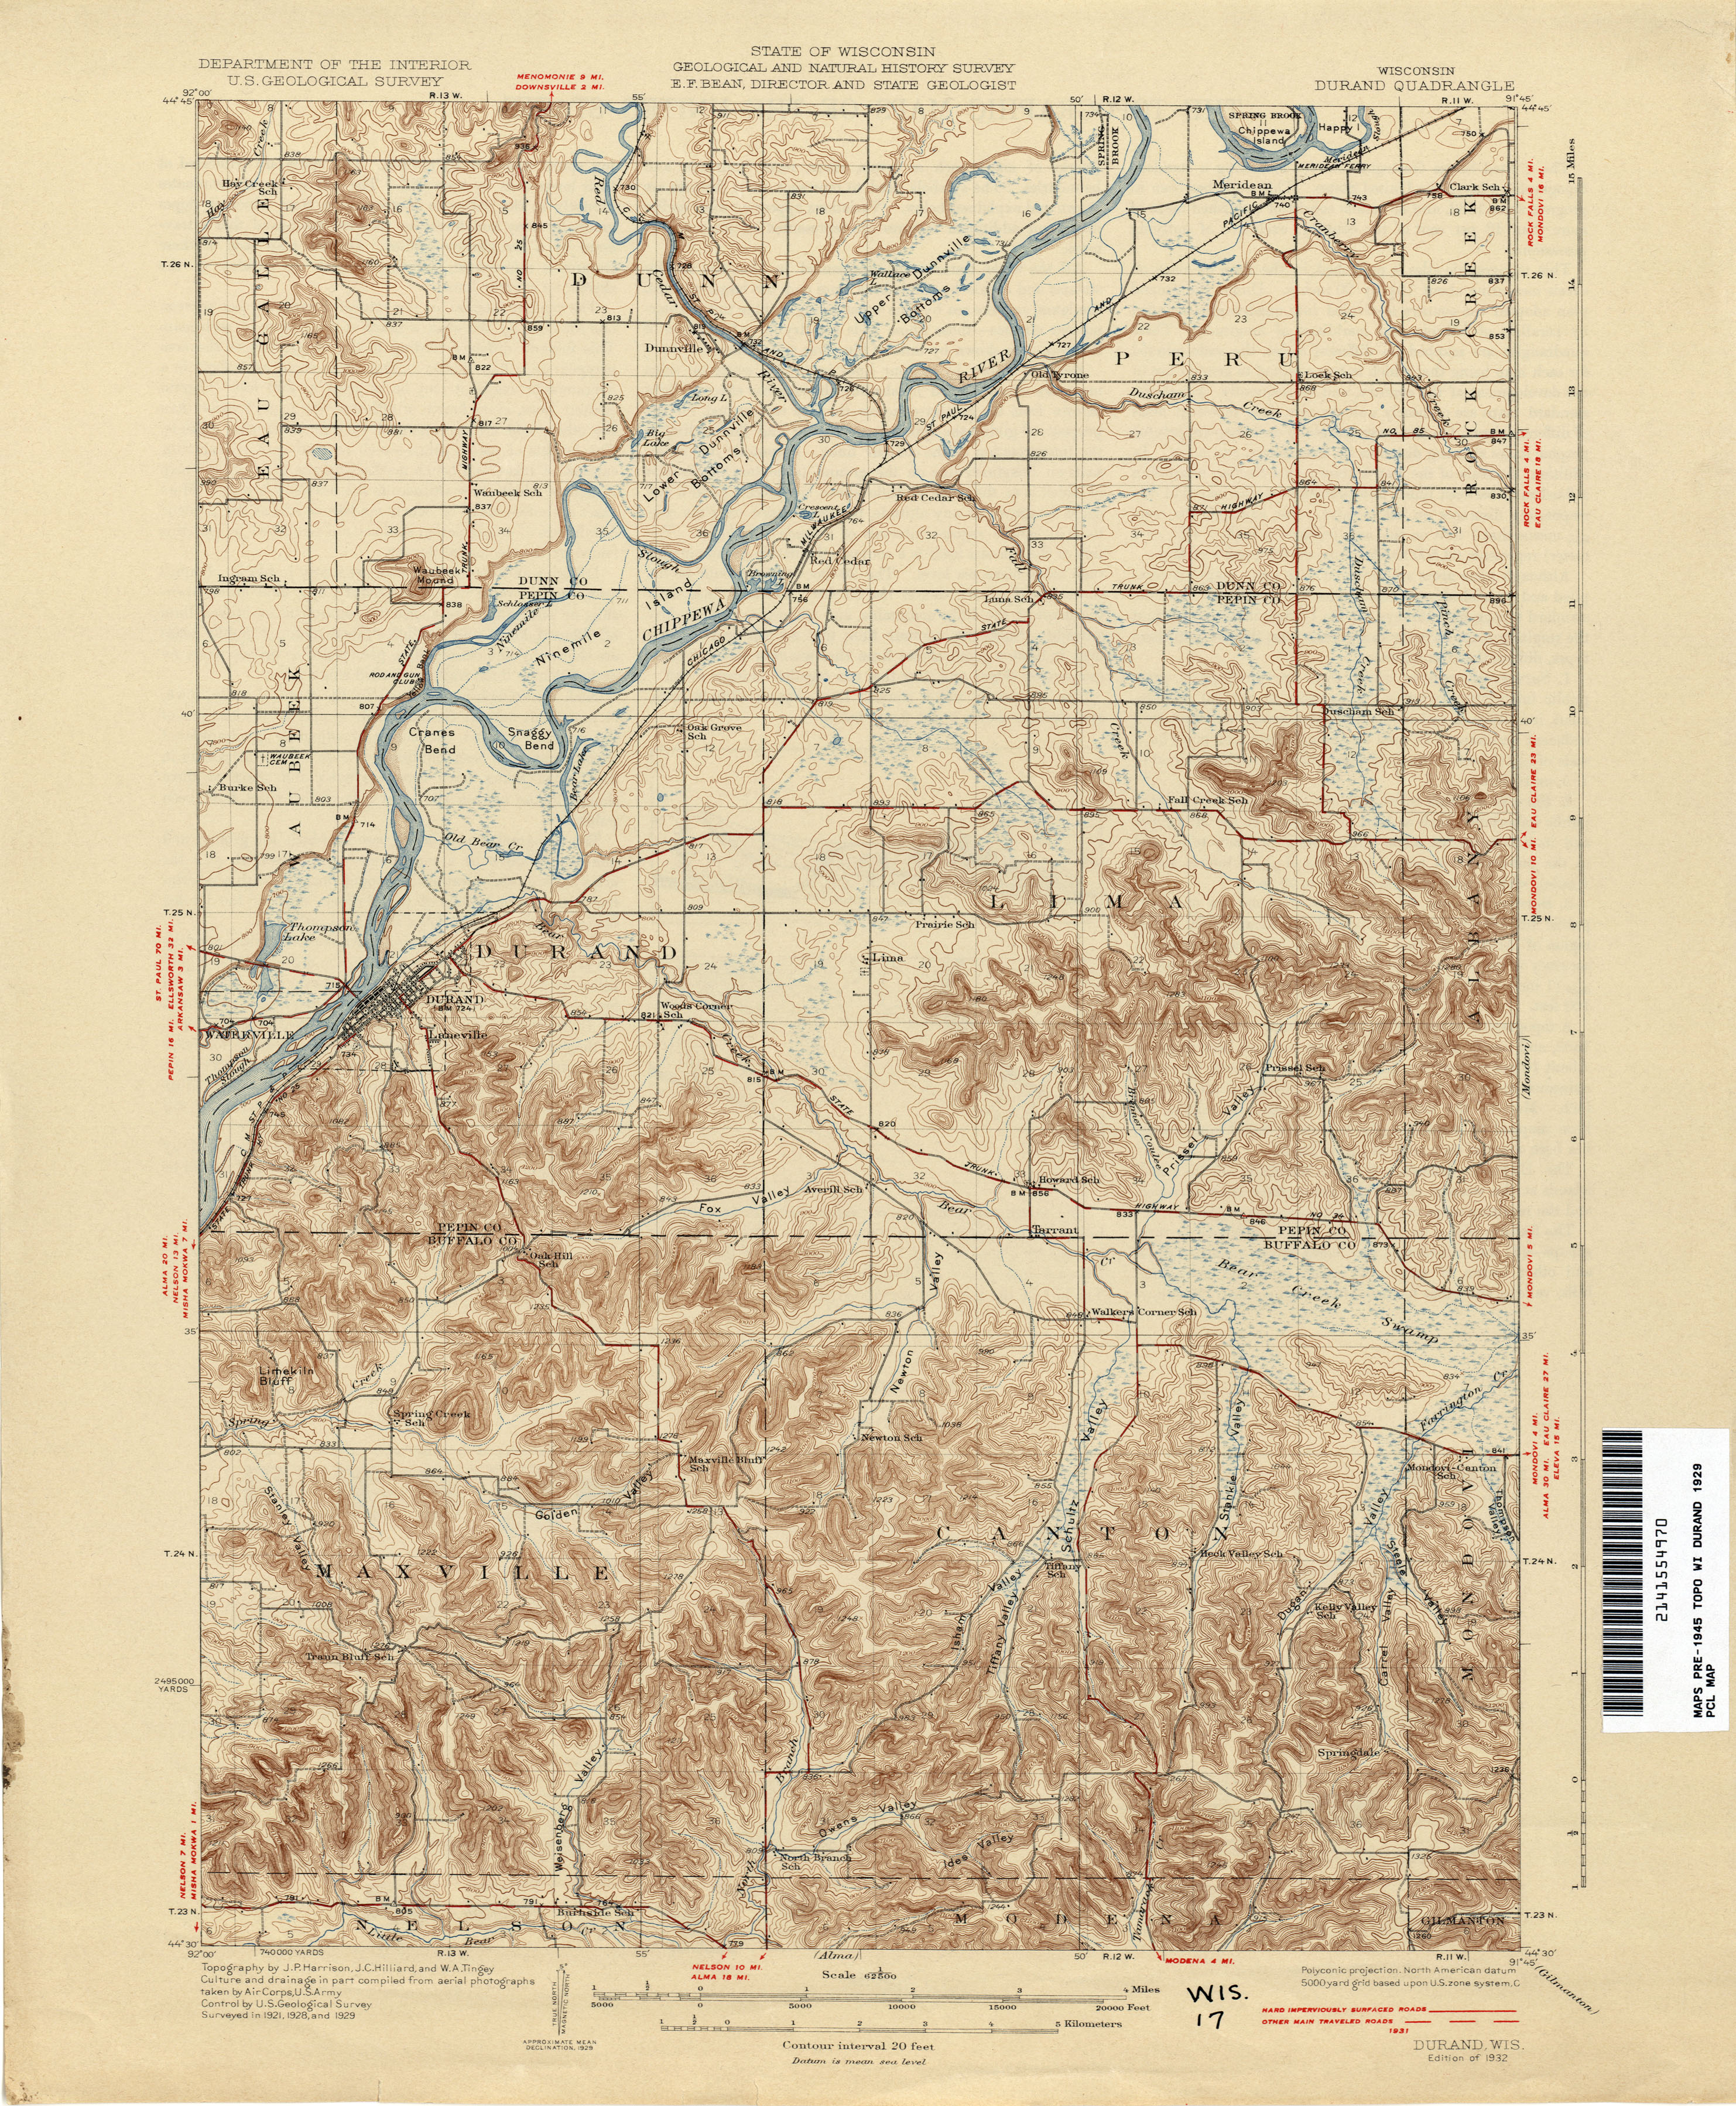 Historical Topographic Maps - Perry-Castañeda Map Collection ...